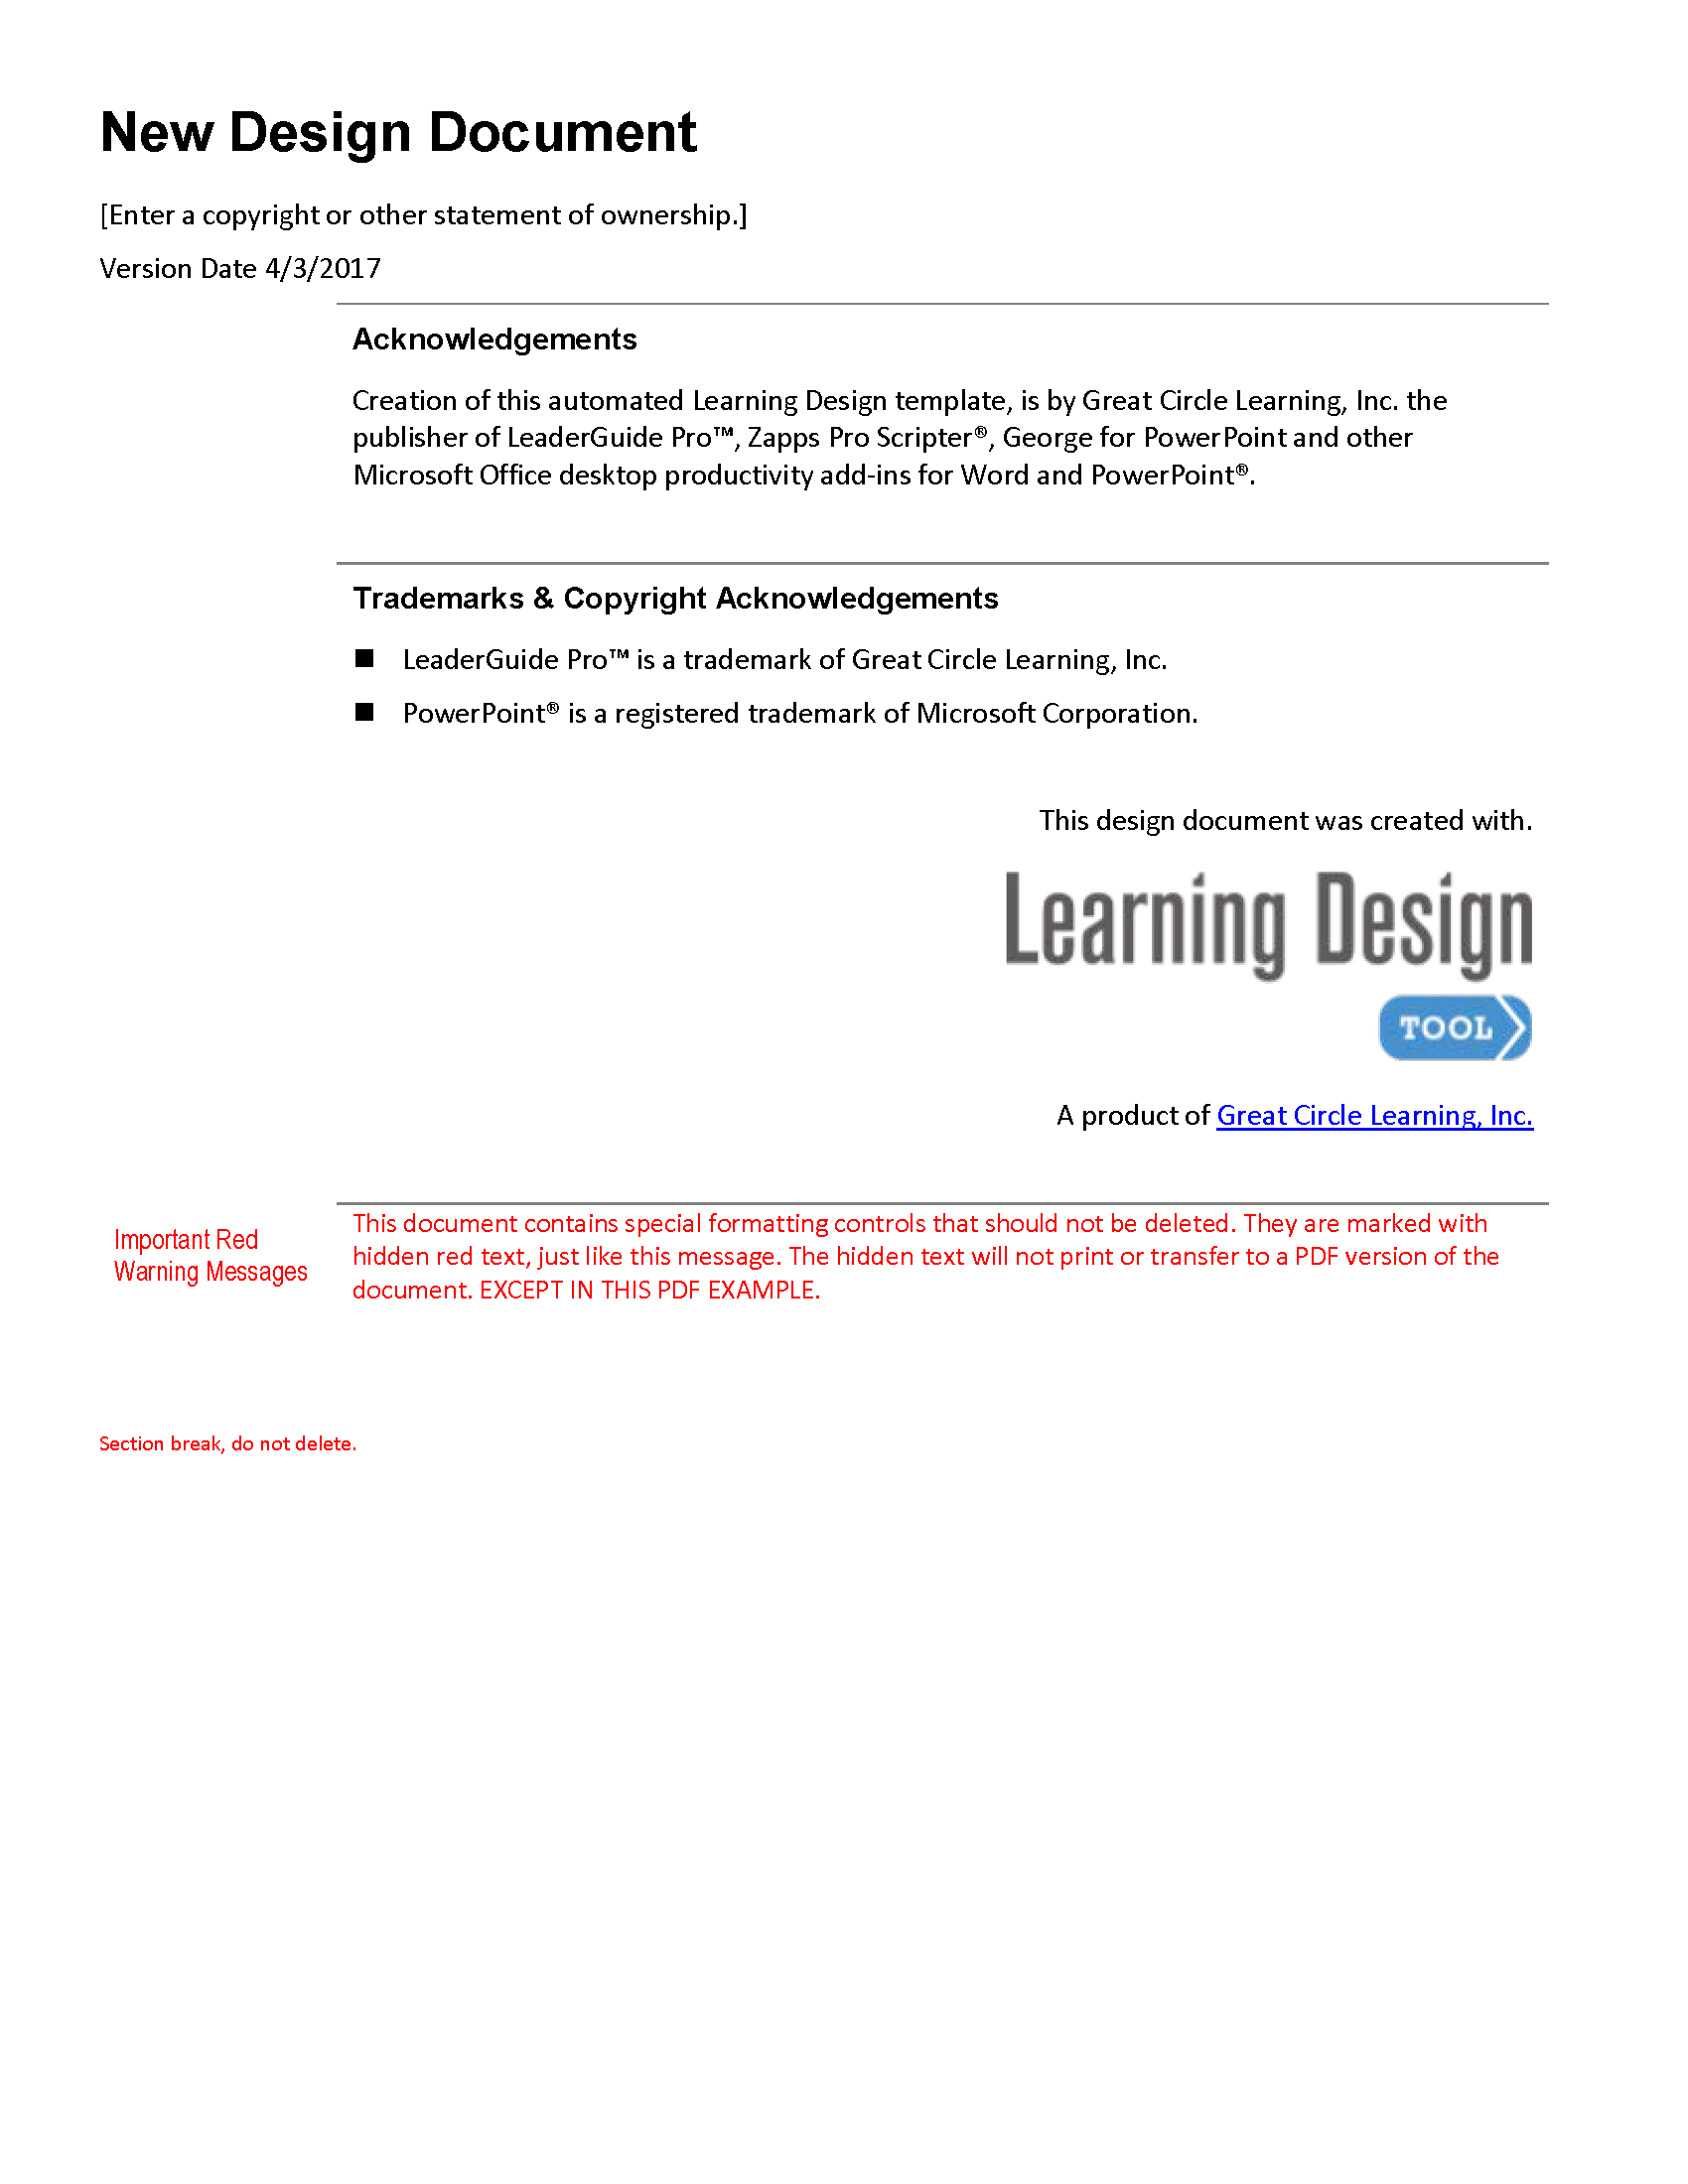 New Design Document_Page_2.png